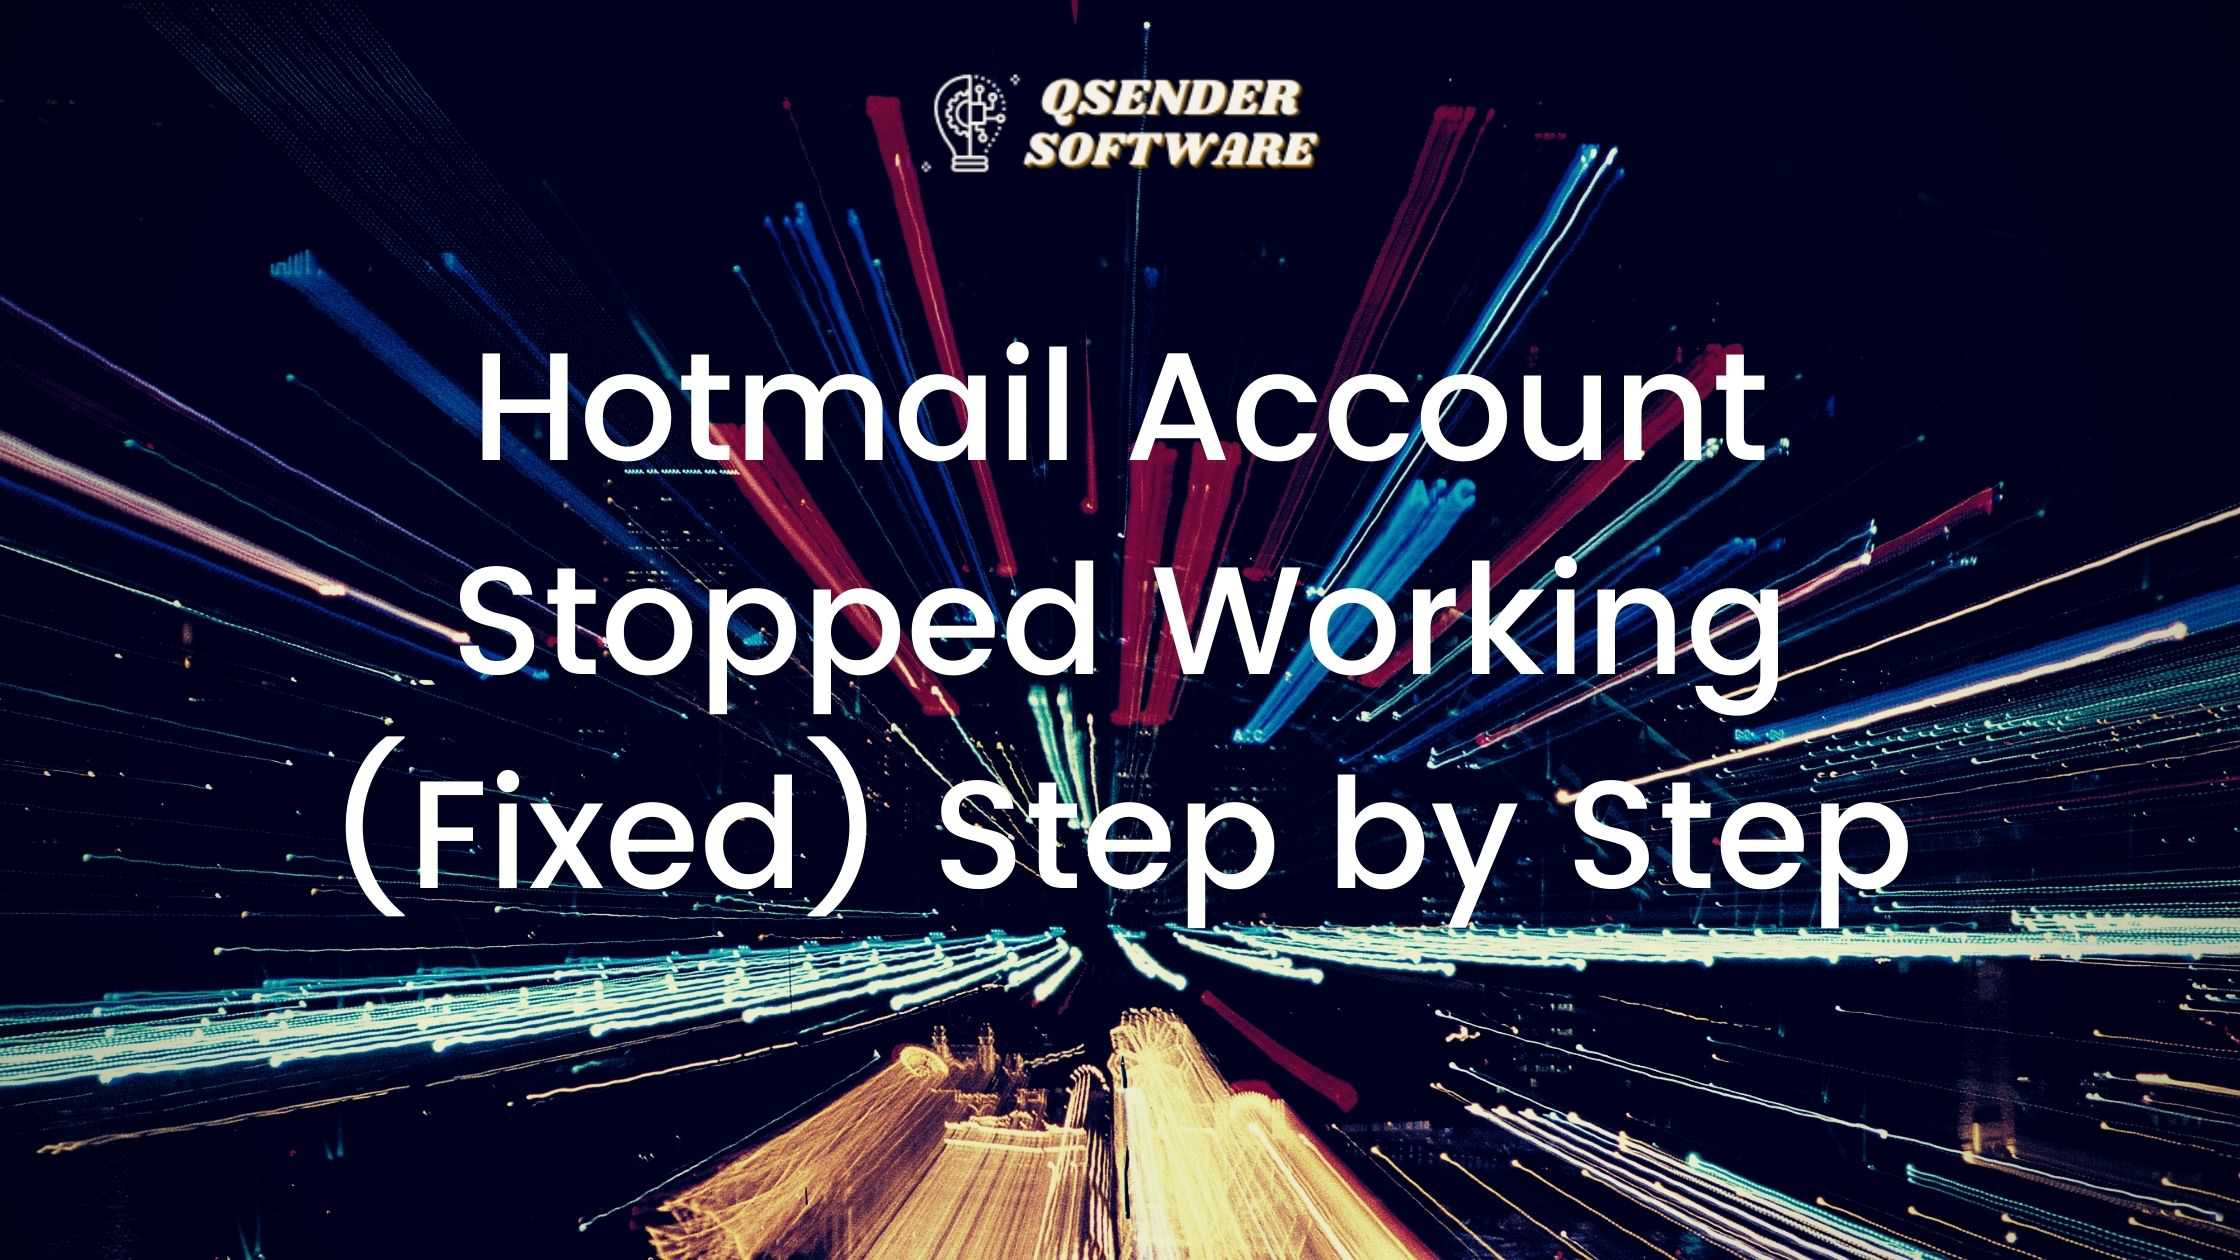 Hotmail Account Stopped Working